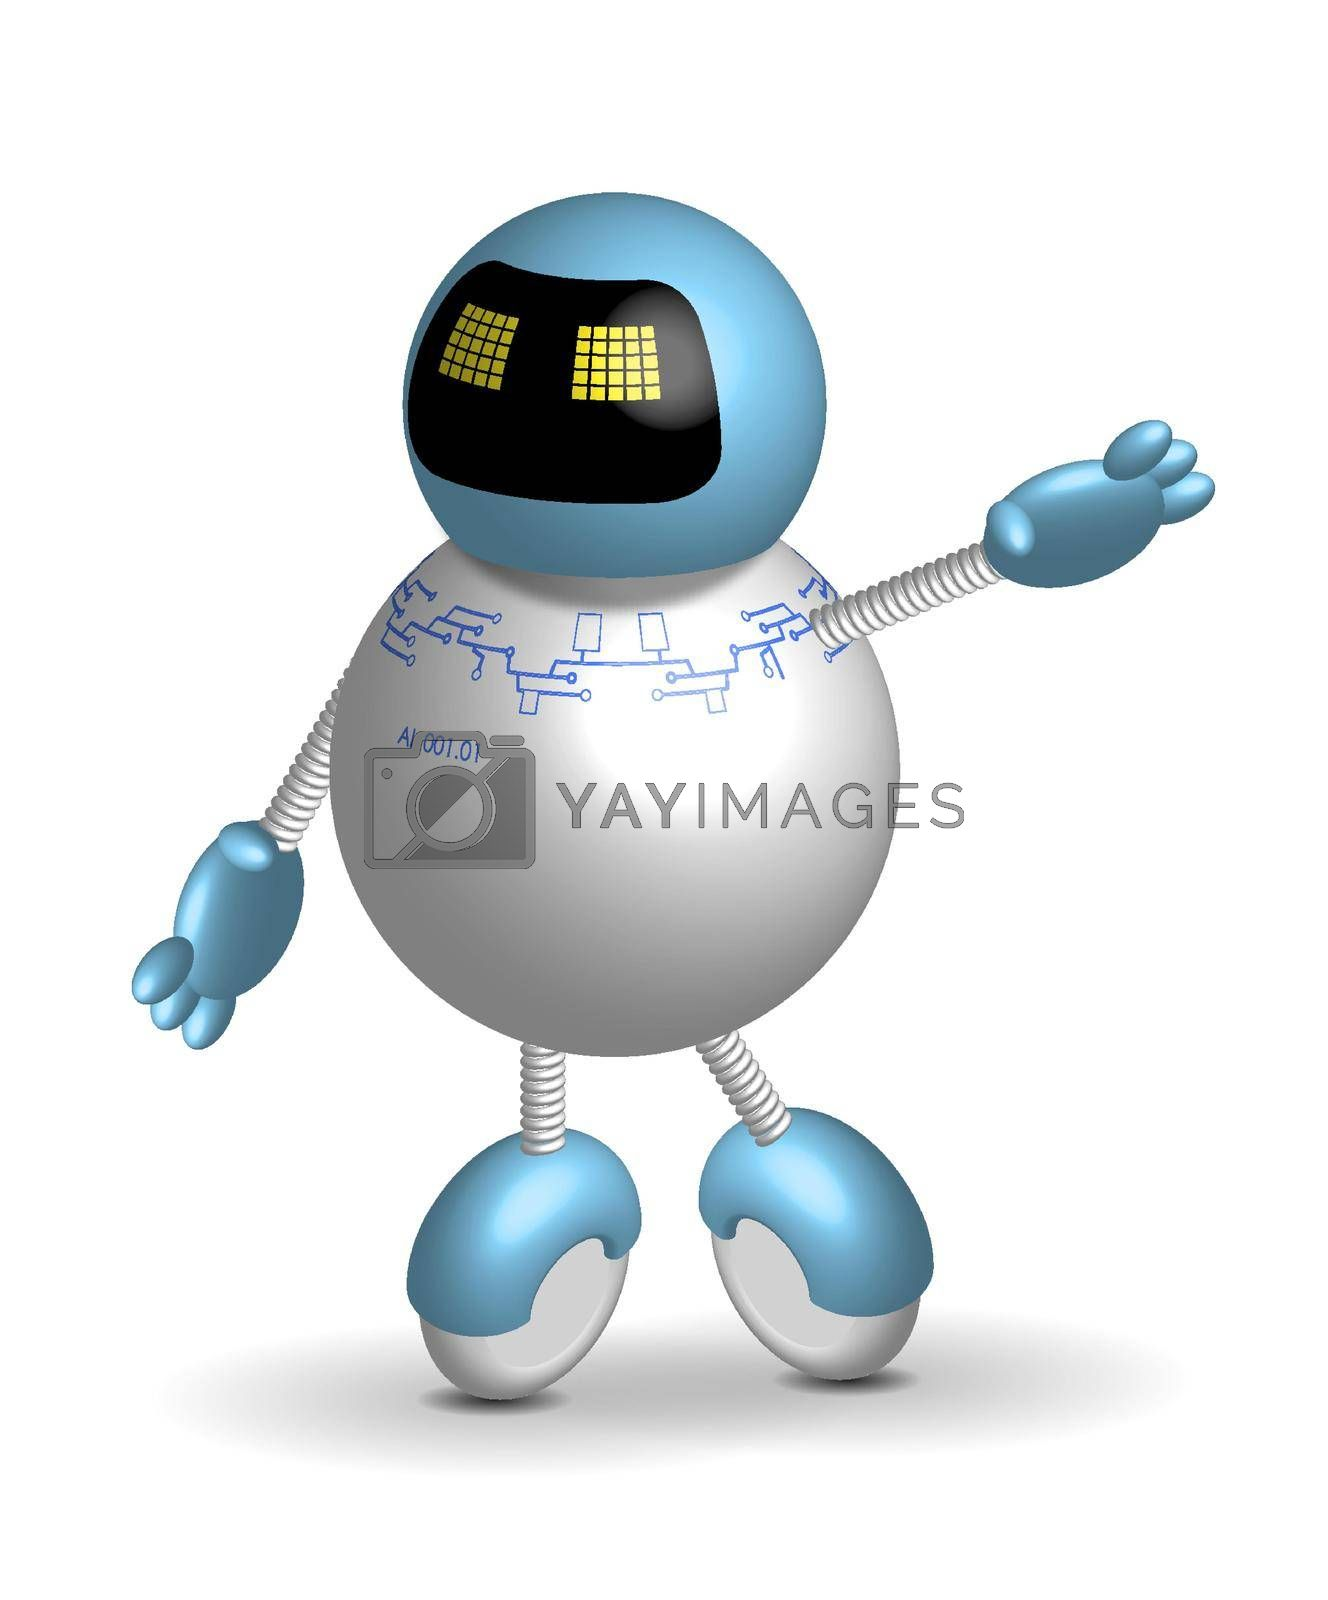 round robot guide, a smart assistant on wheels. Technologies of the future. Isolated vector on white background